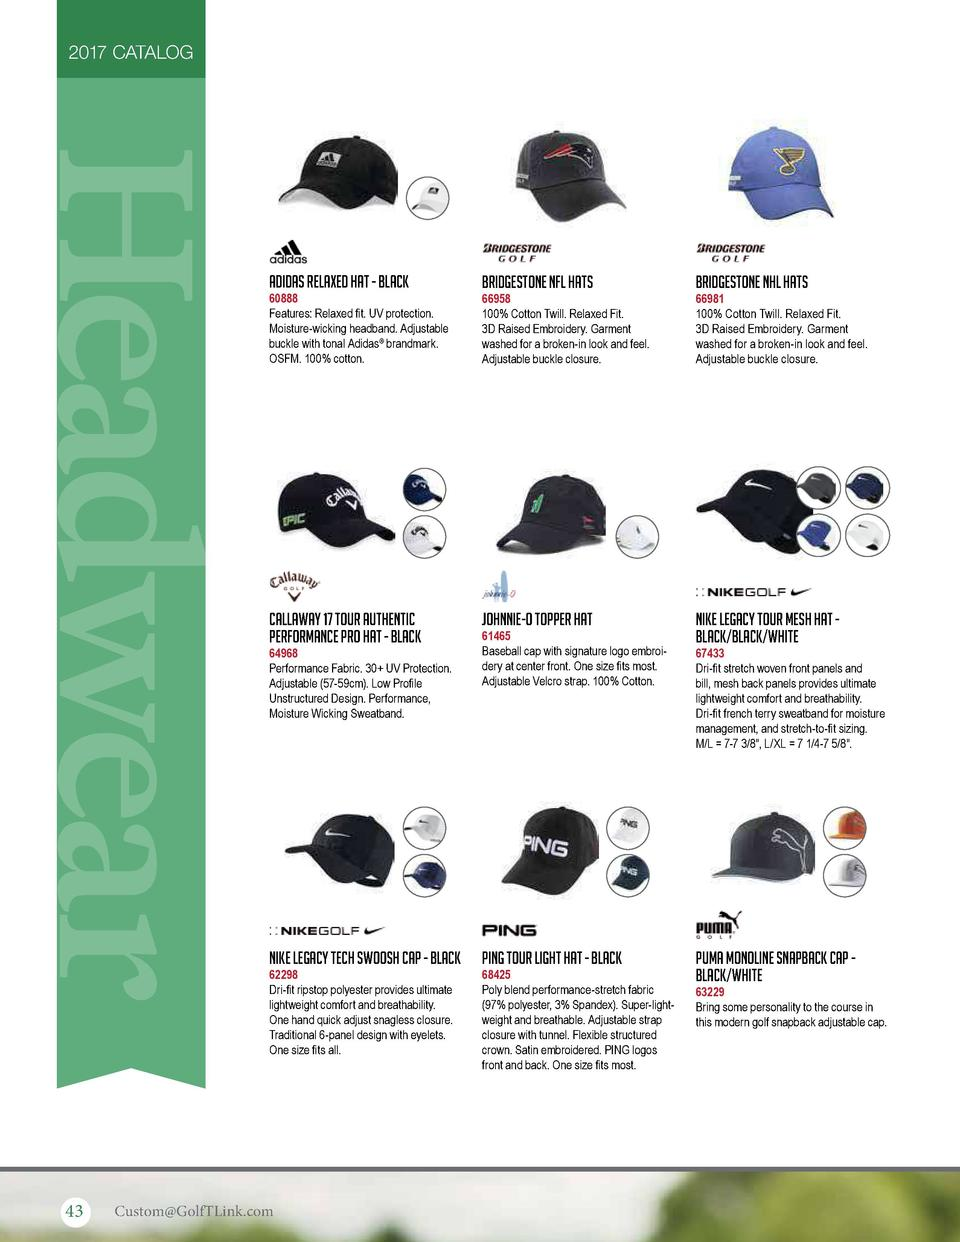 2017 CATALOG  Headwear 43  Adidas Relaxed Hat - Black  Bridgestone NFL Hats  Bridgestone NHL Hats  Callaway 17 Tour Authen...